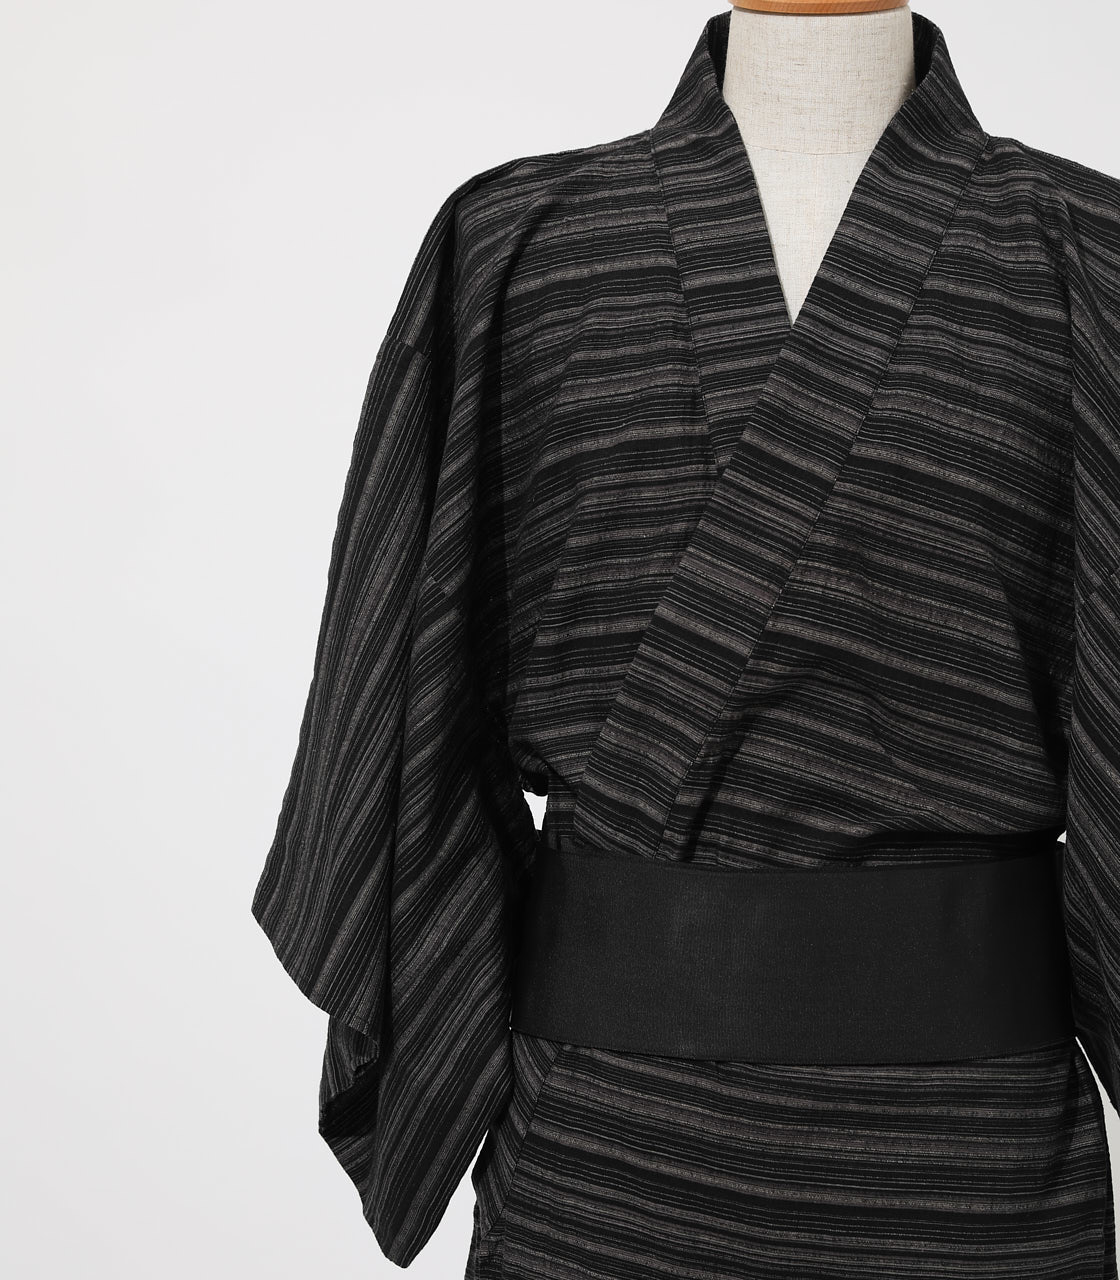 LINEN COTTON YUKATA 詳細画像 BLK 6